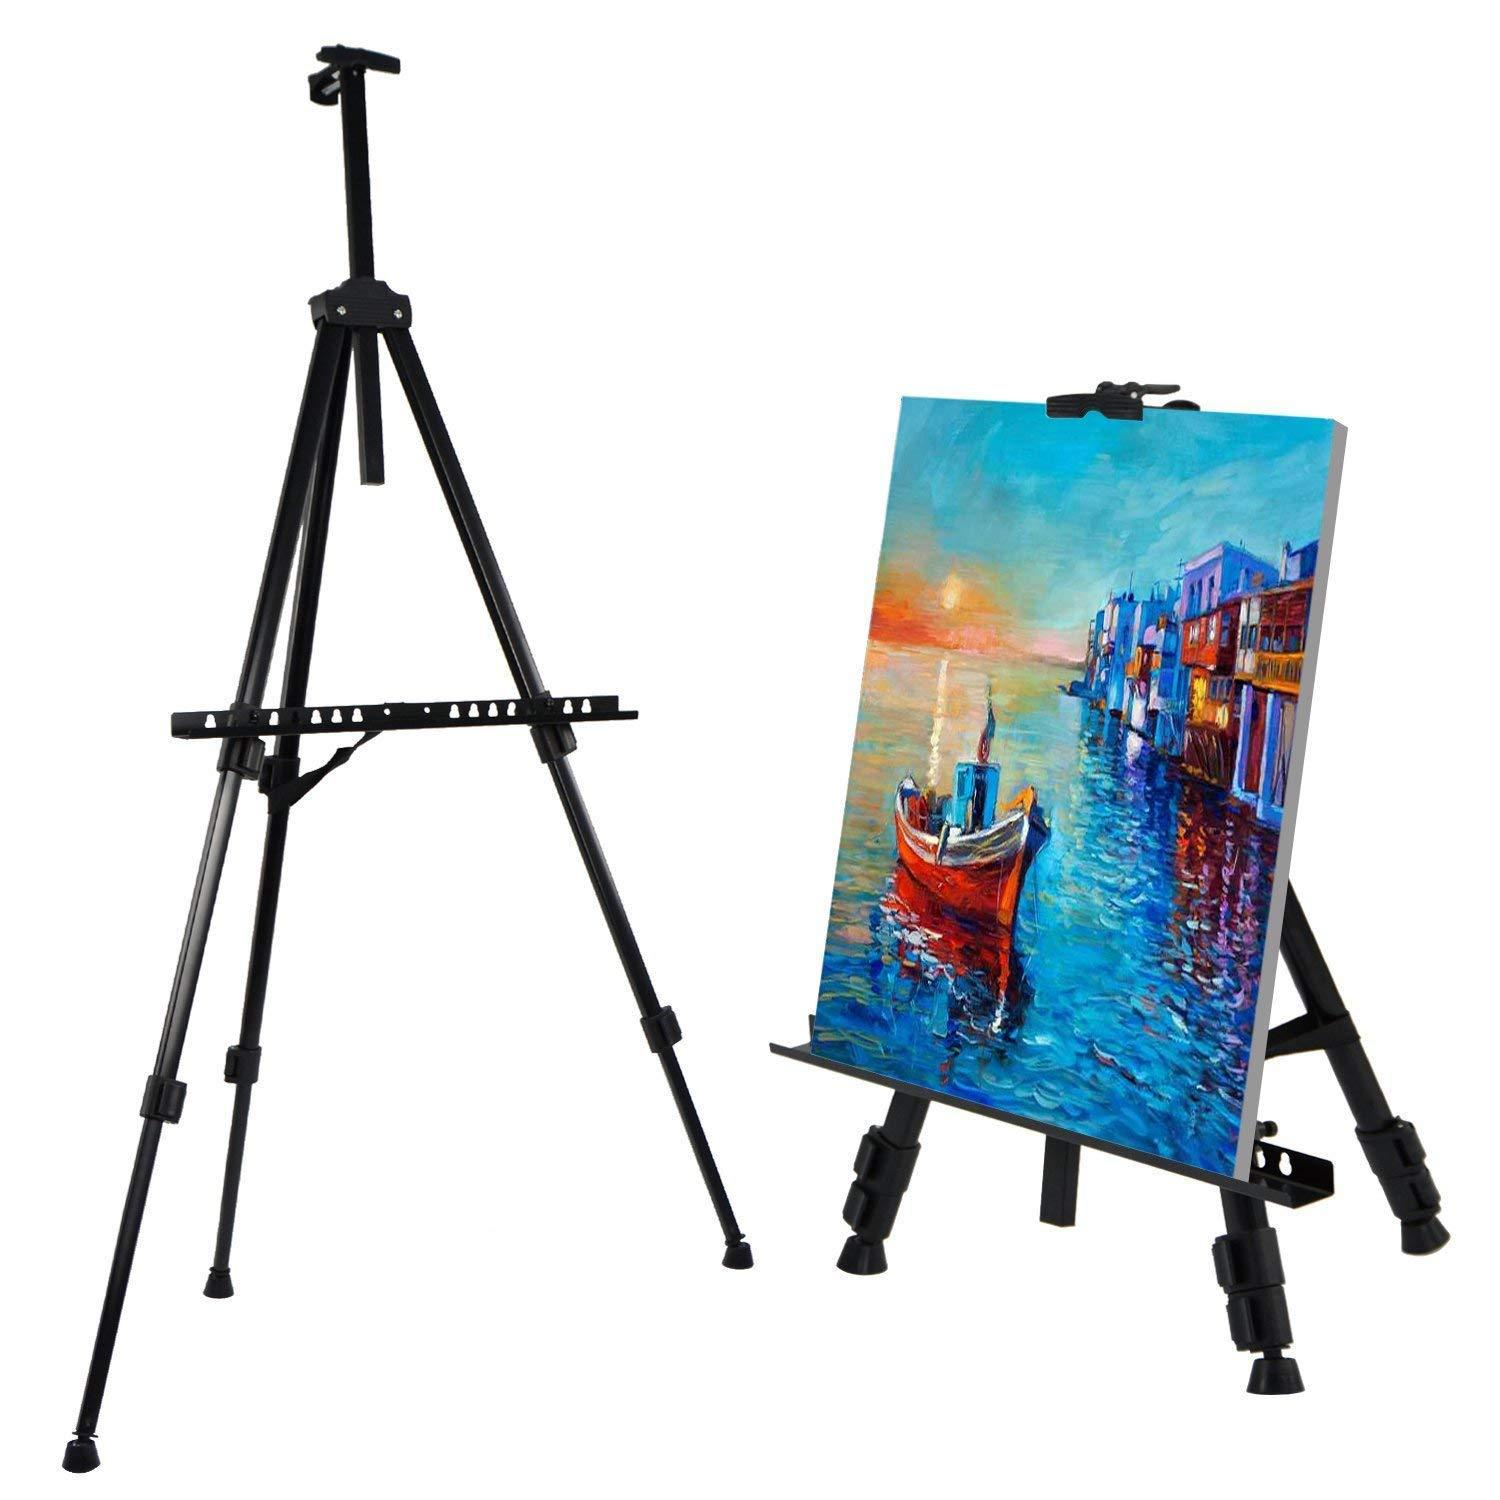 Elegante Beaute Aluminum Easel Stand High Quality By Elegante Beaute.